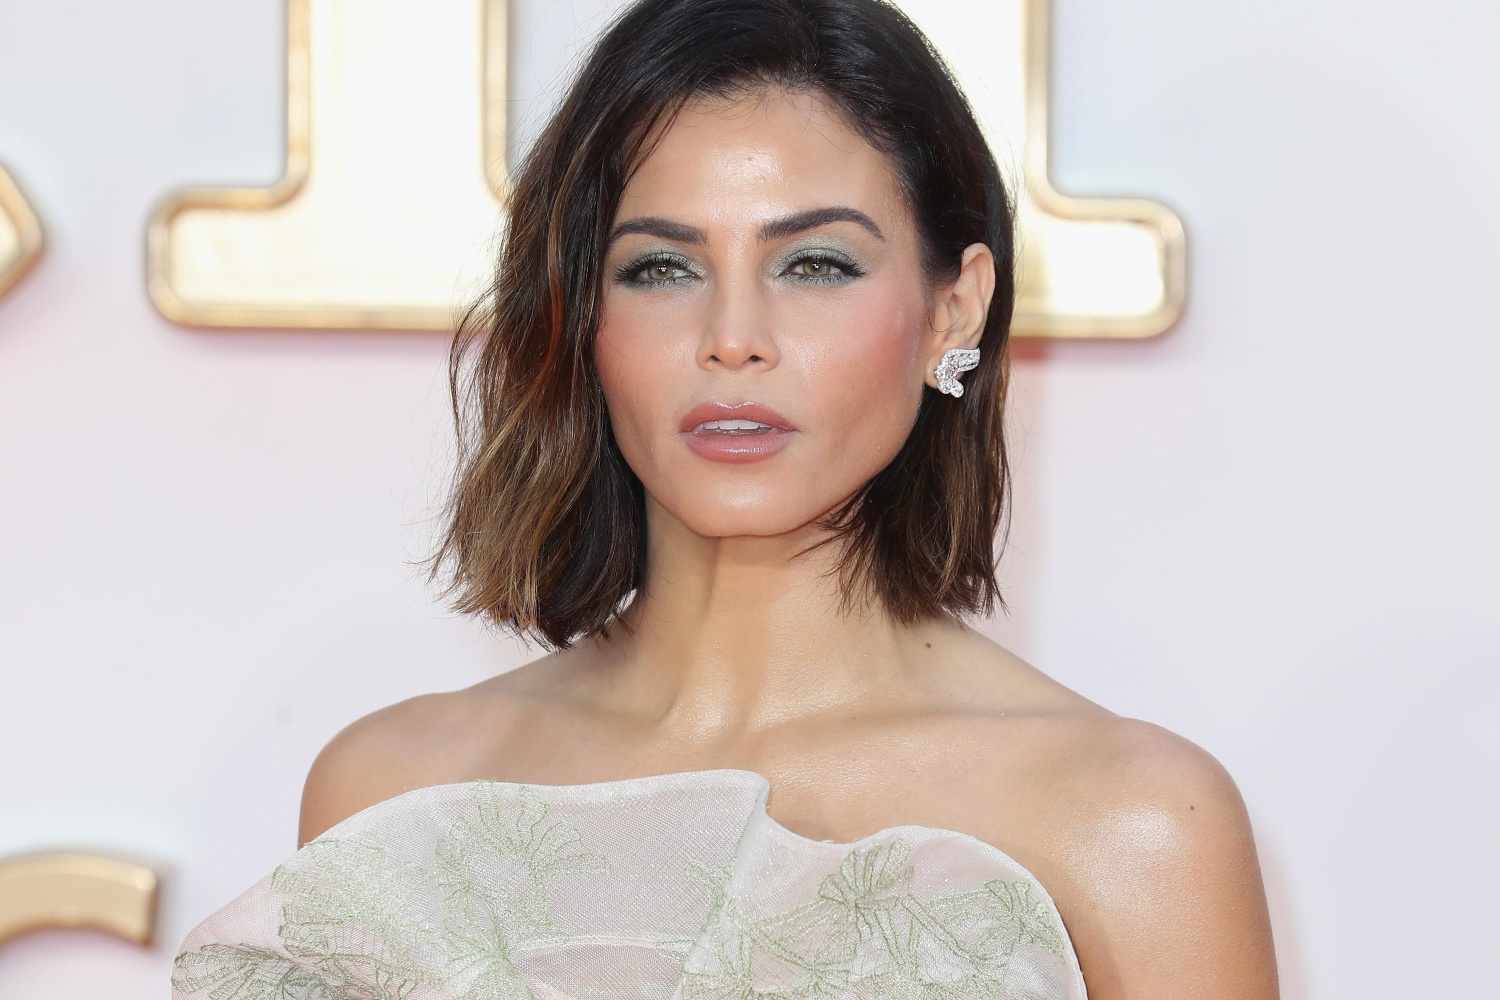 Jenna Dewan Makes First Red Carpet Appearance Since Channing Tatum Split